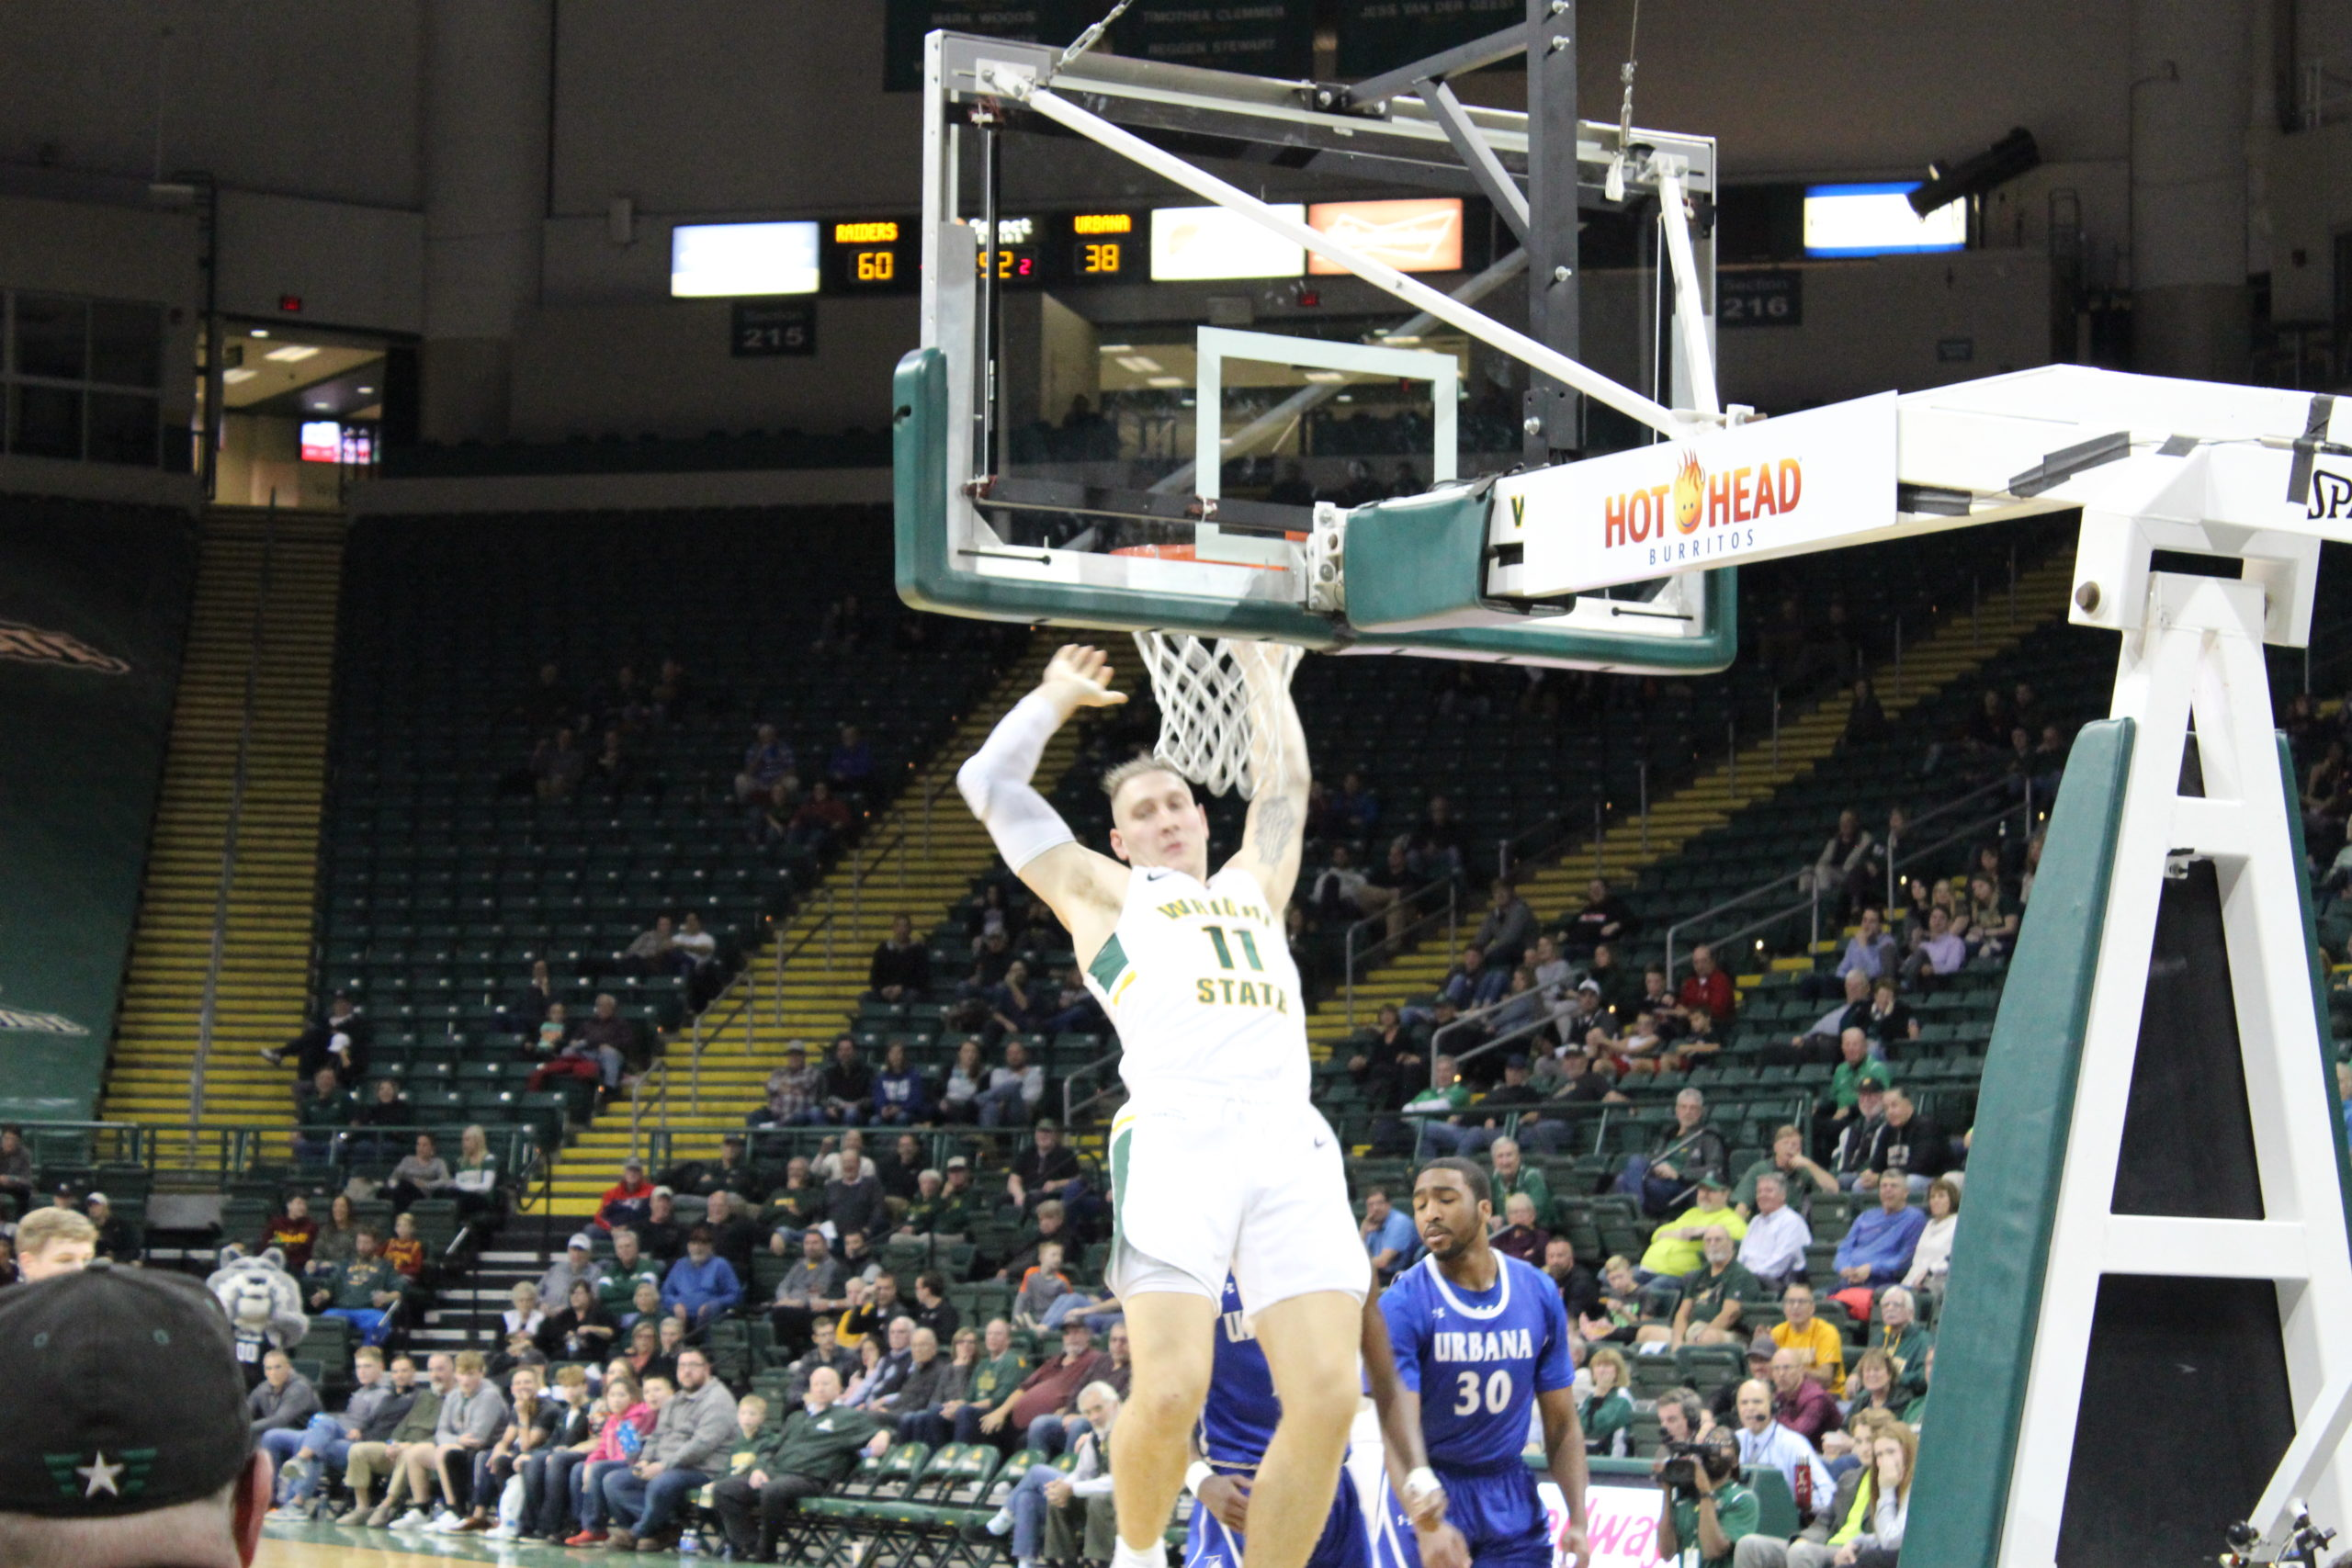 WSU vs. Urbana Mens Basketball | Photo by Daniel Delgado | The Wright State Guardian